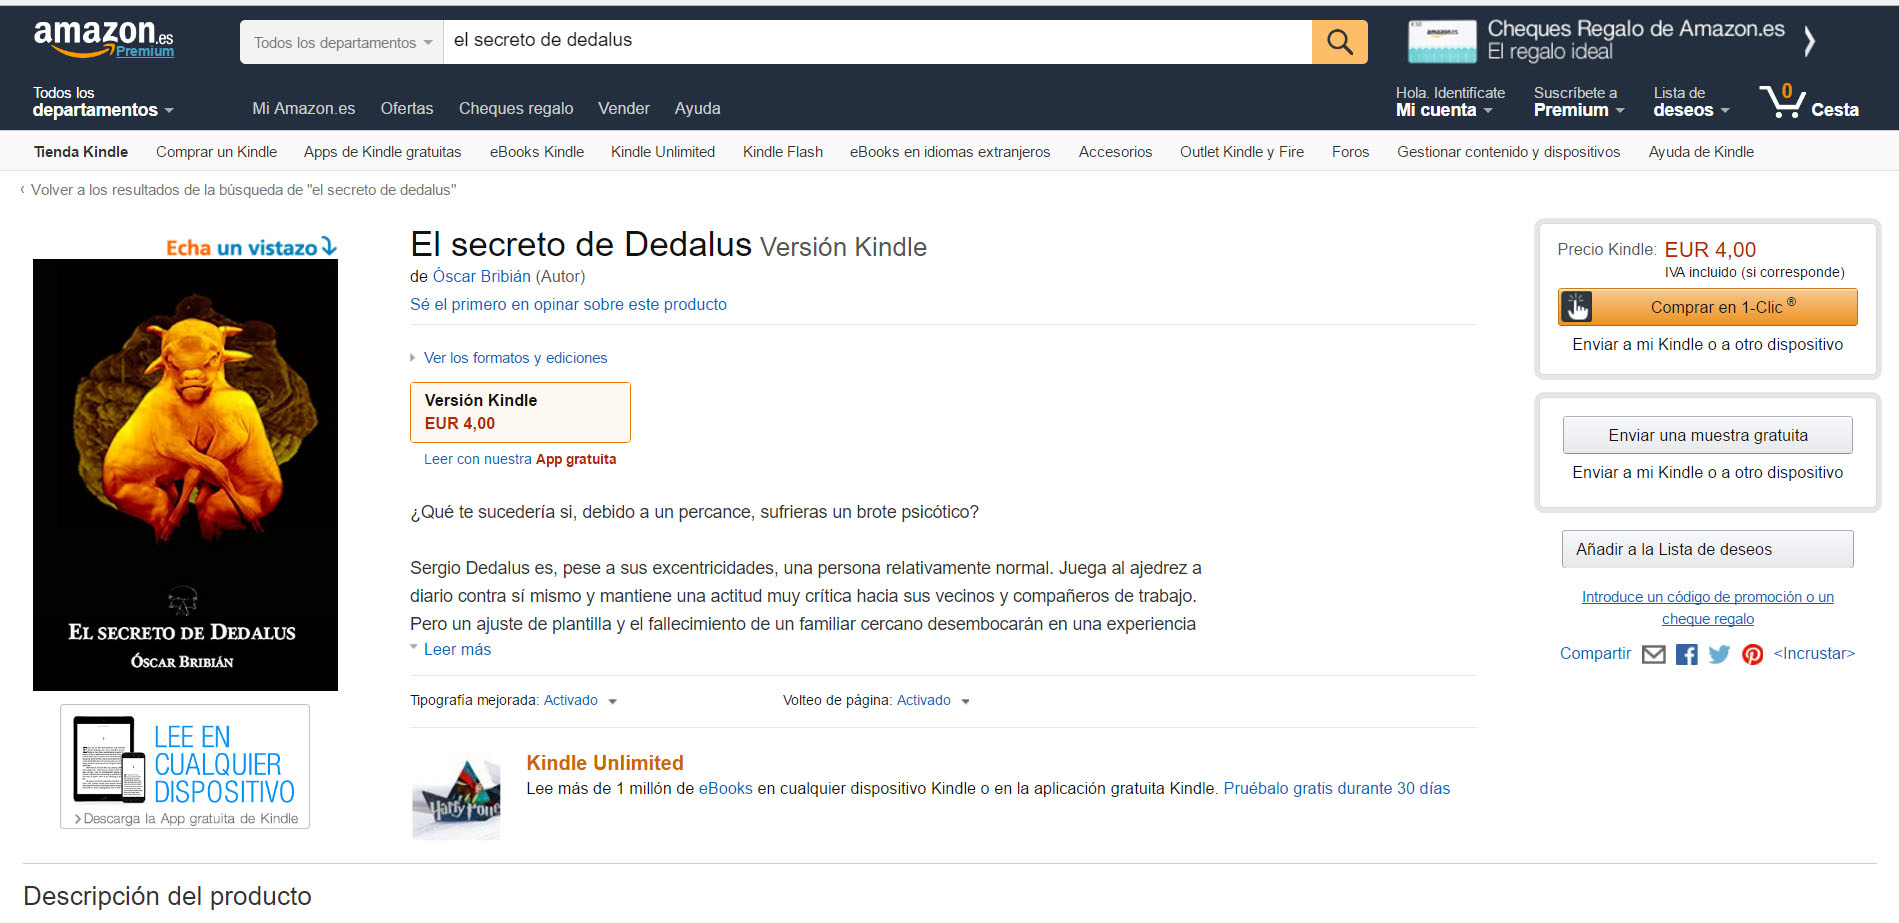 elsecretodededalus_amazon